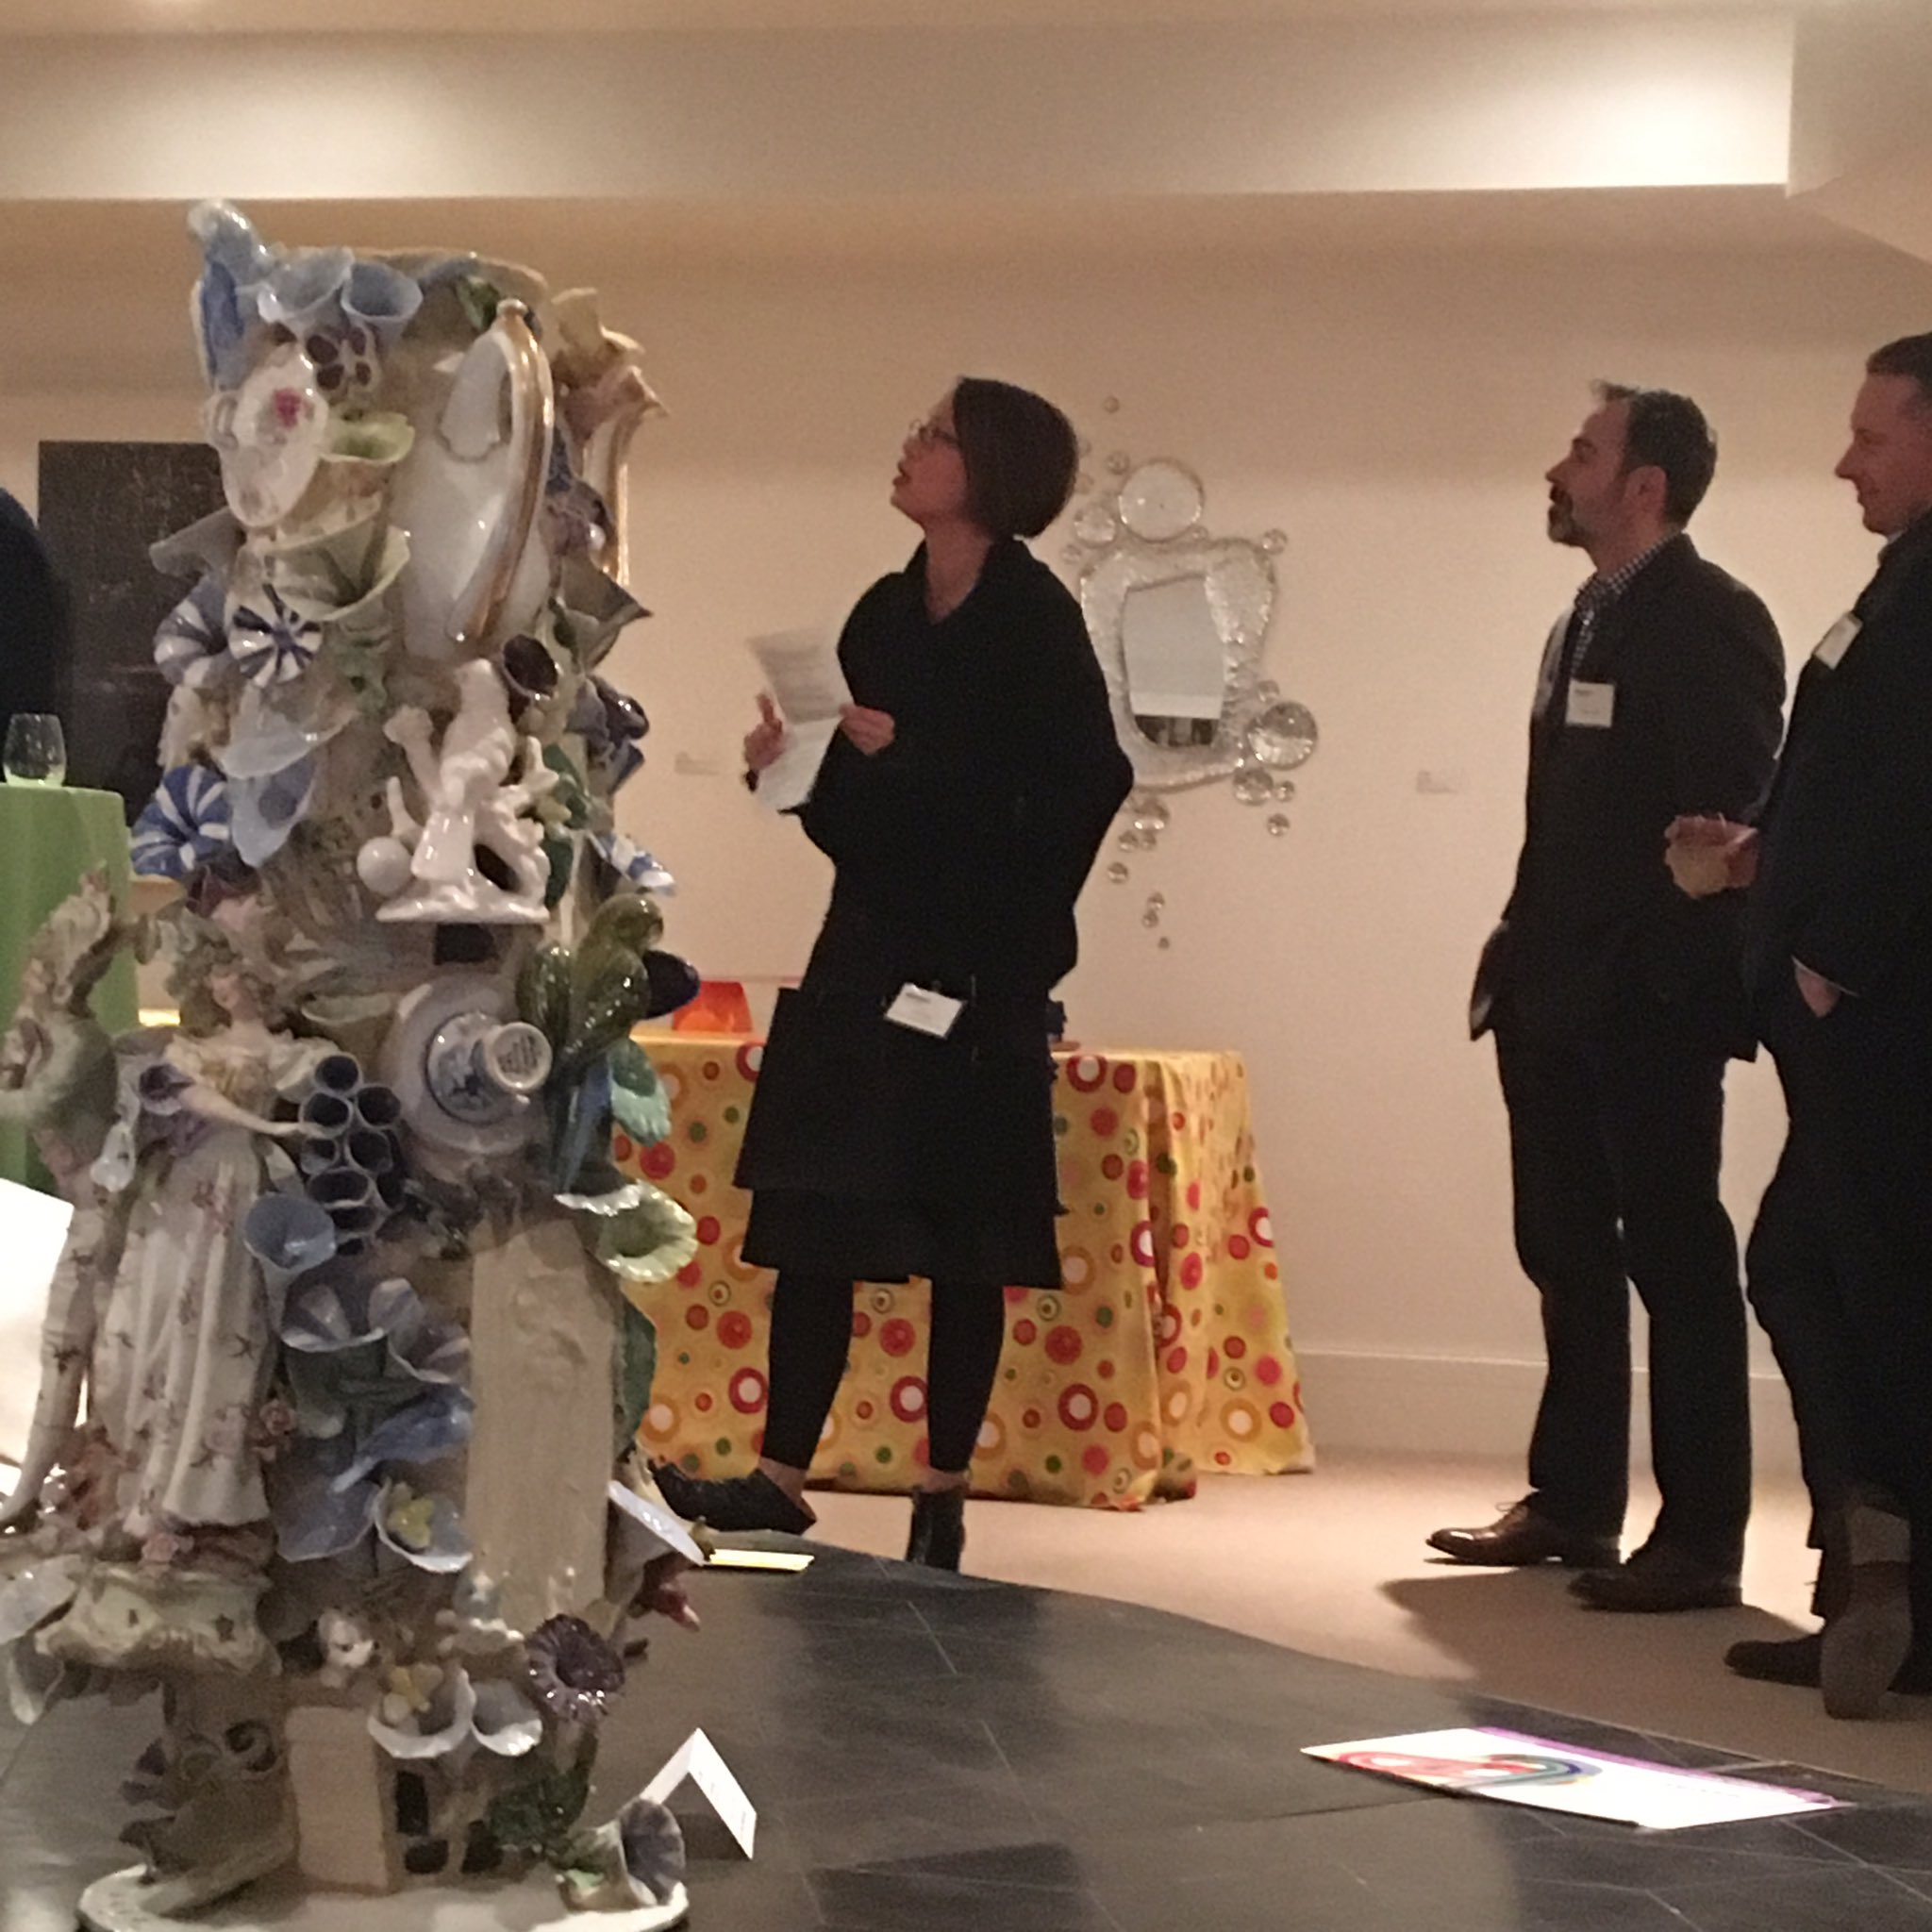 Amazing night and official start of #massartauction. Lisa Tung is a rock star. https://t.co/Up3ff7oLw9